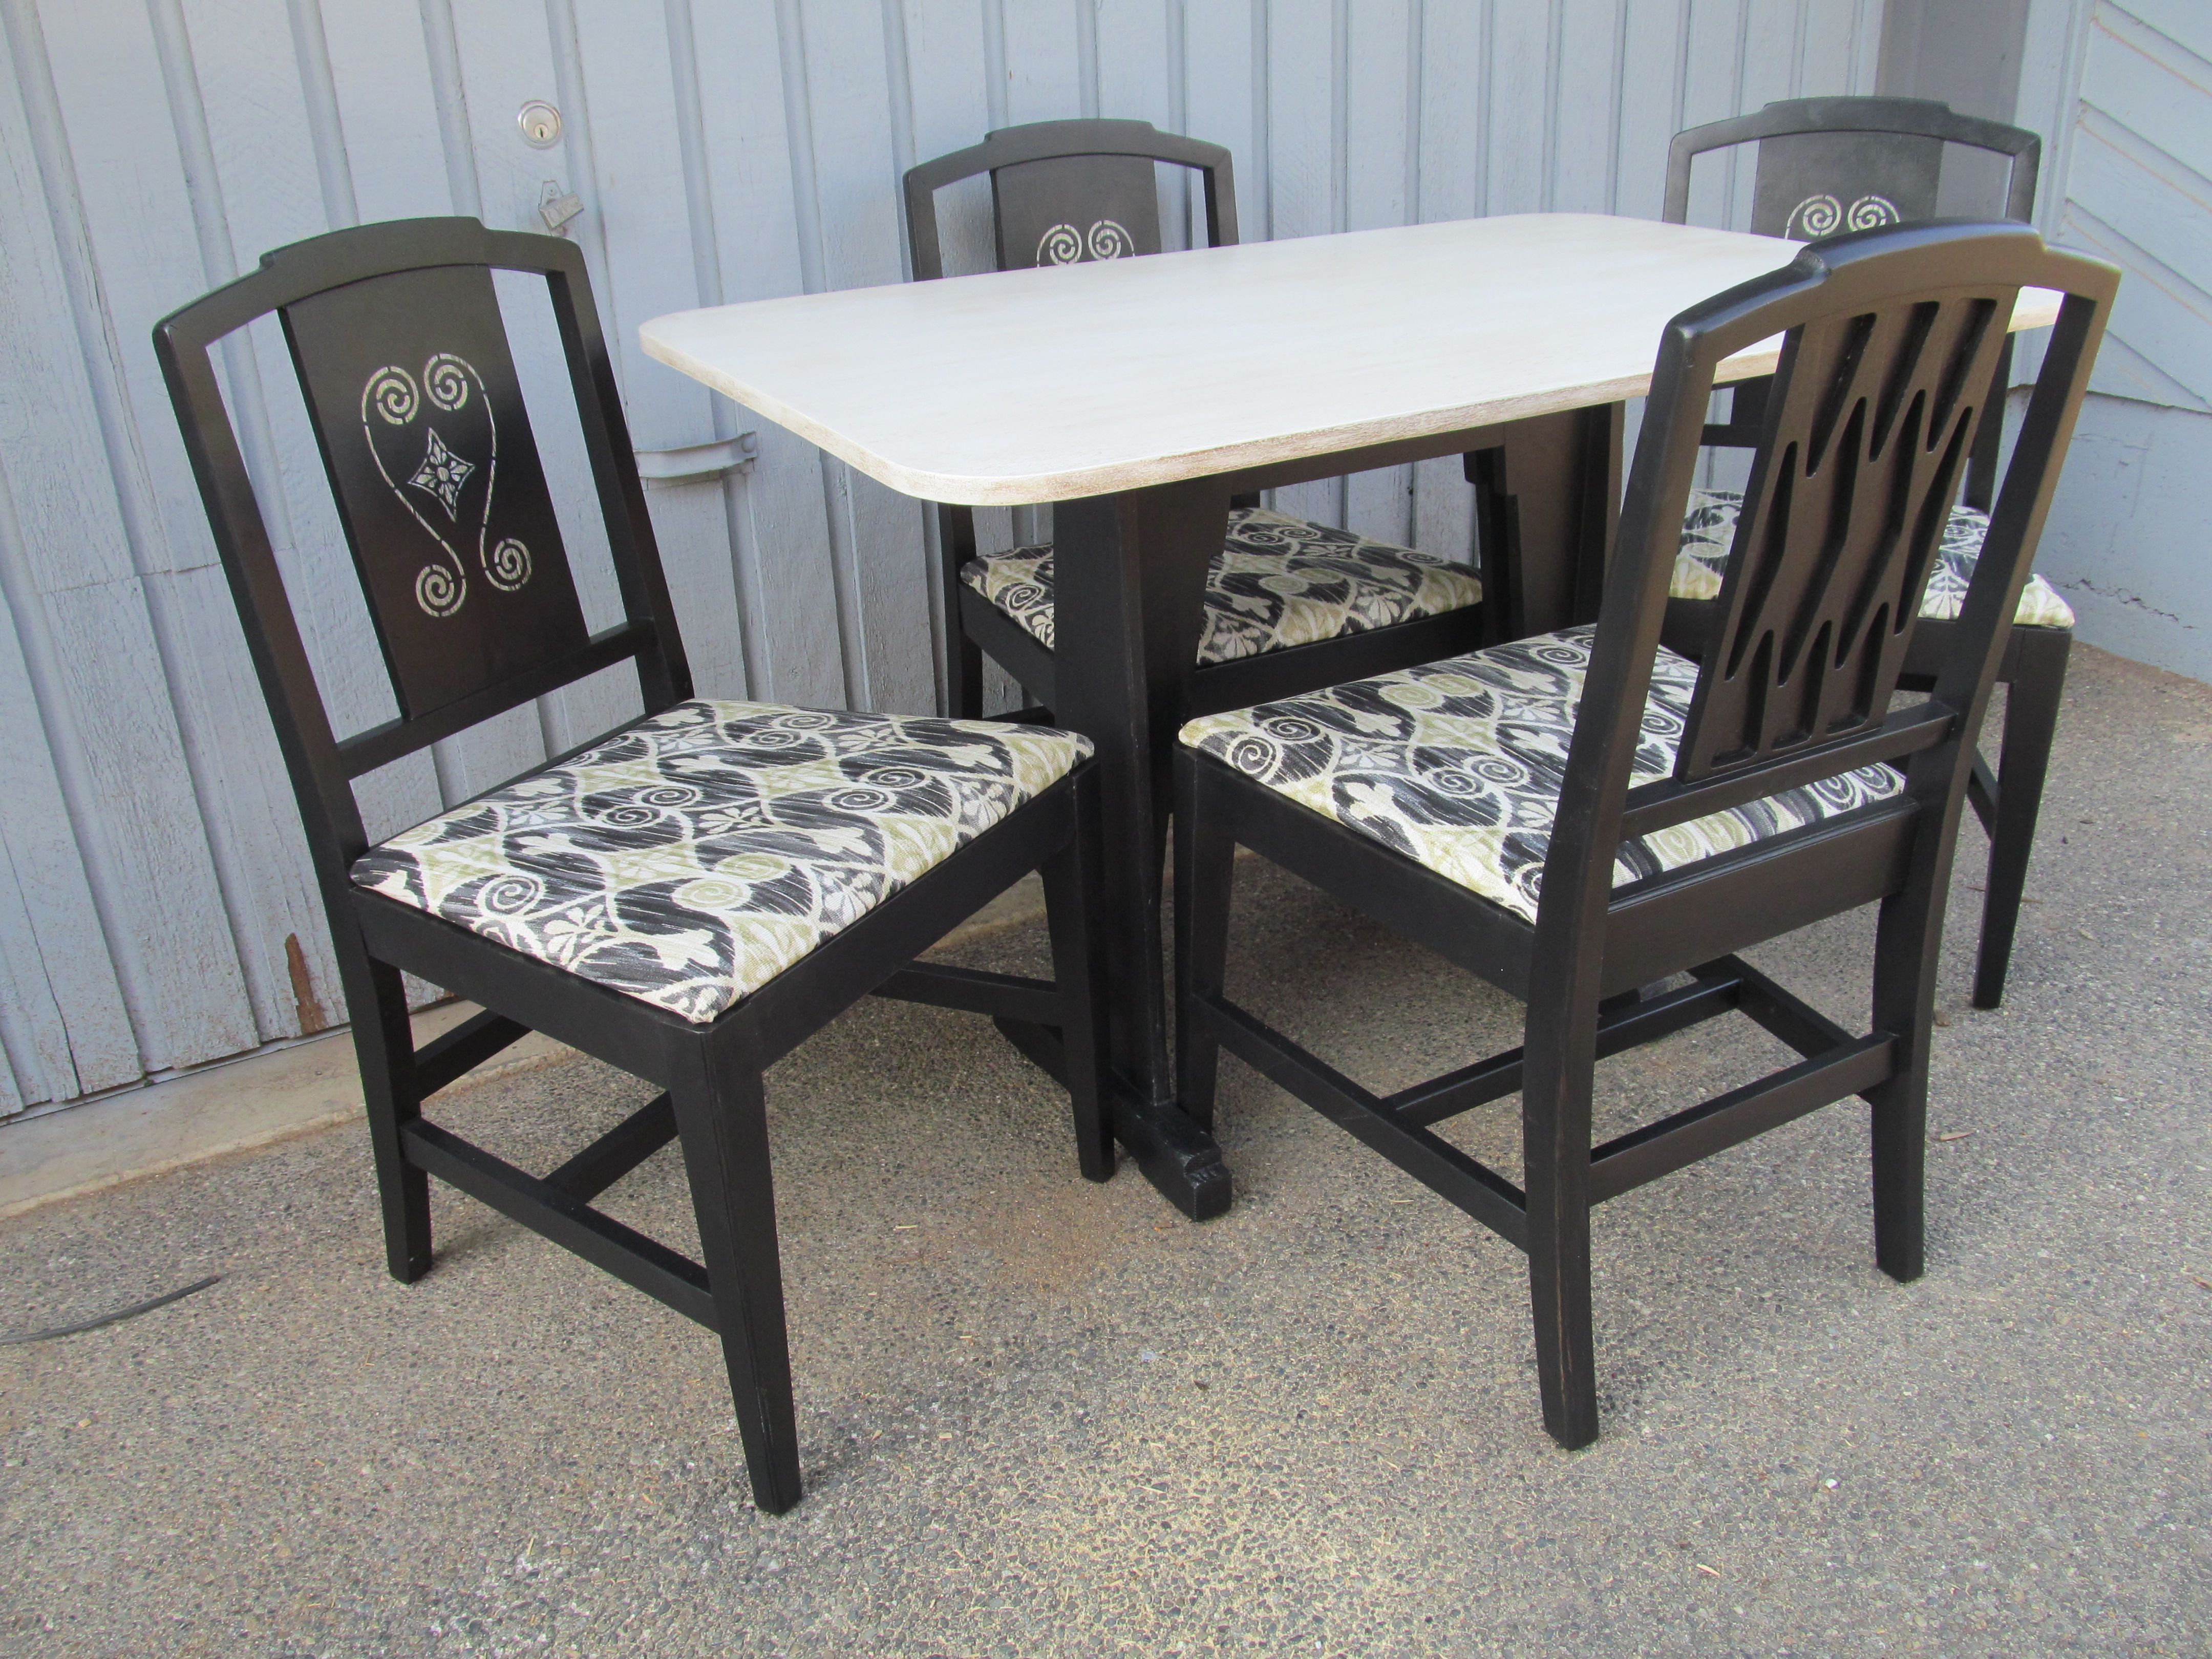 Prime Repurposed Dining Chairs Dining Table And Chairs After Unemploymentrelief Wooden Chair Designs For Living Room Unemploymentrelieforg